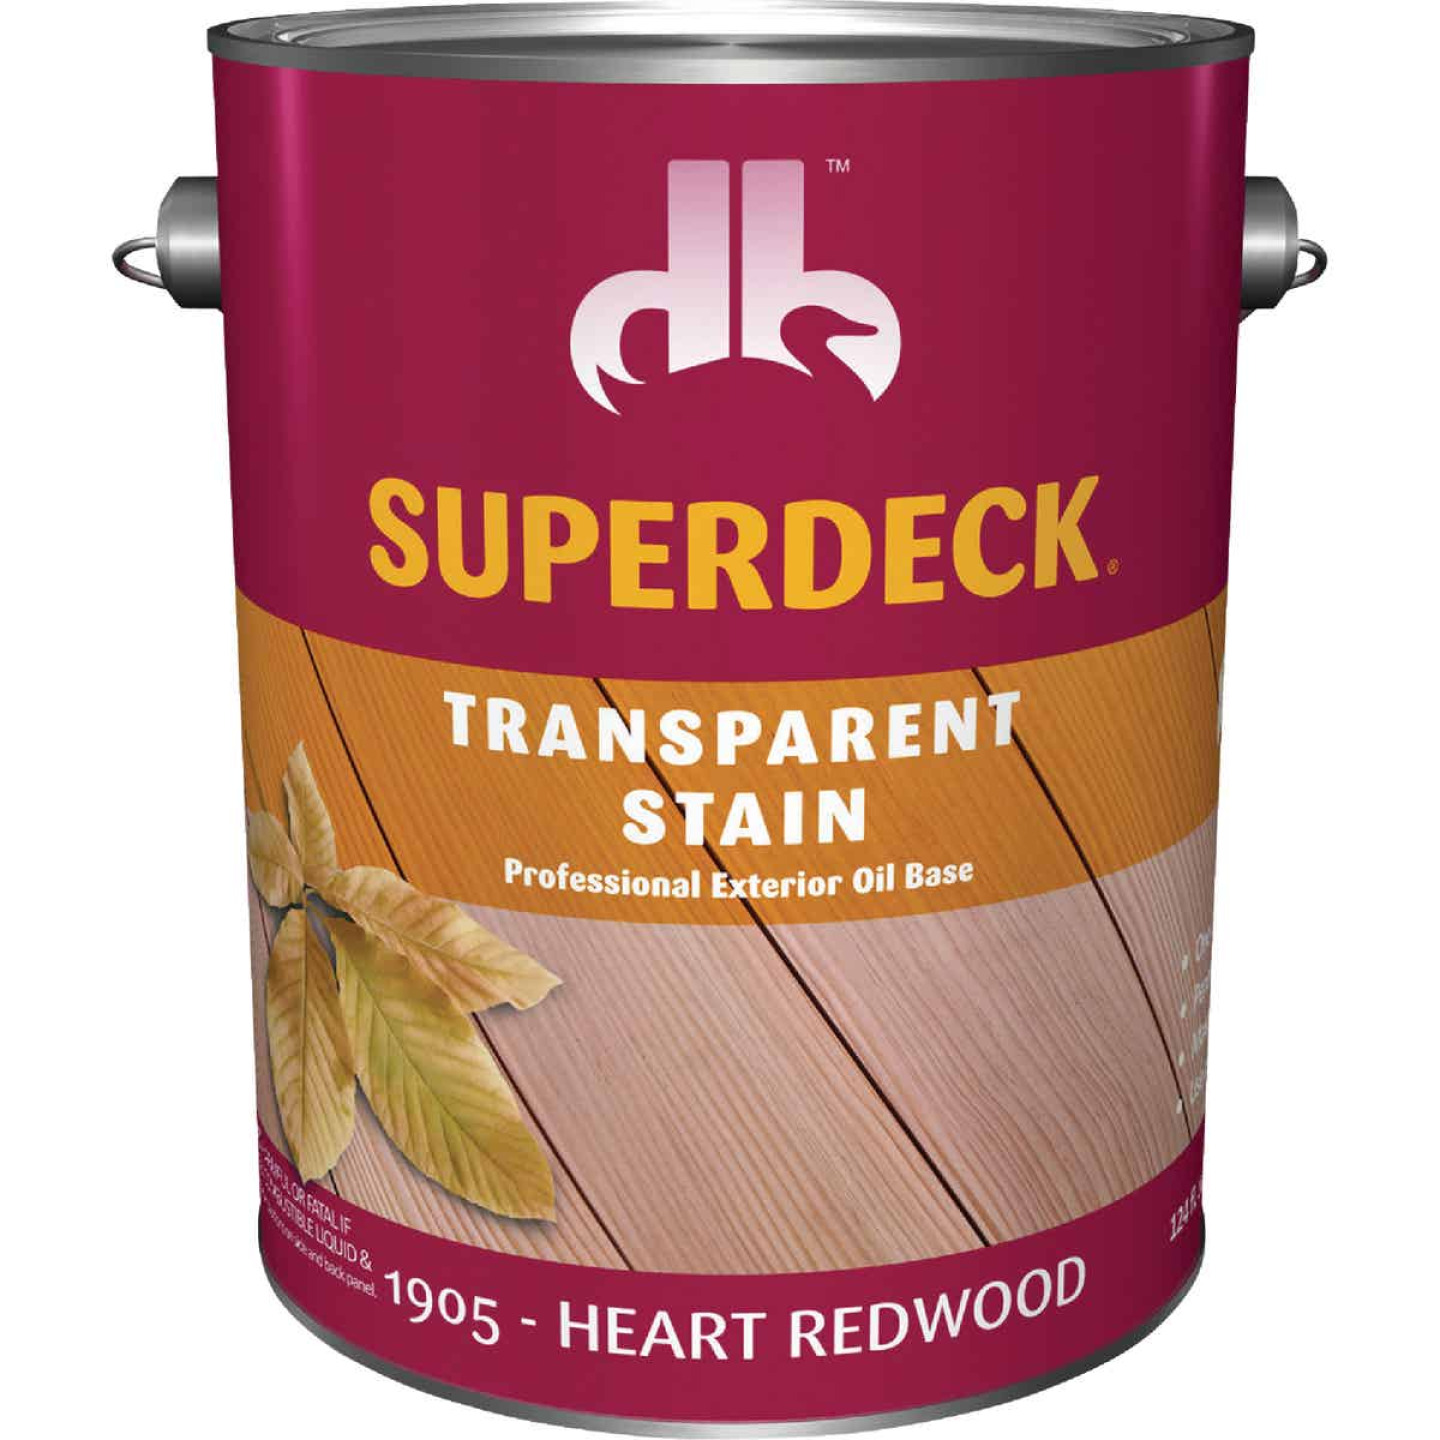 Duckback SUPERDECK Transparent Exterior Stain, Heart Redwood, 1 Gal. Image 1